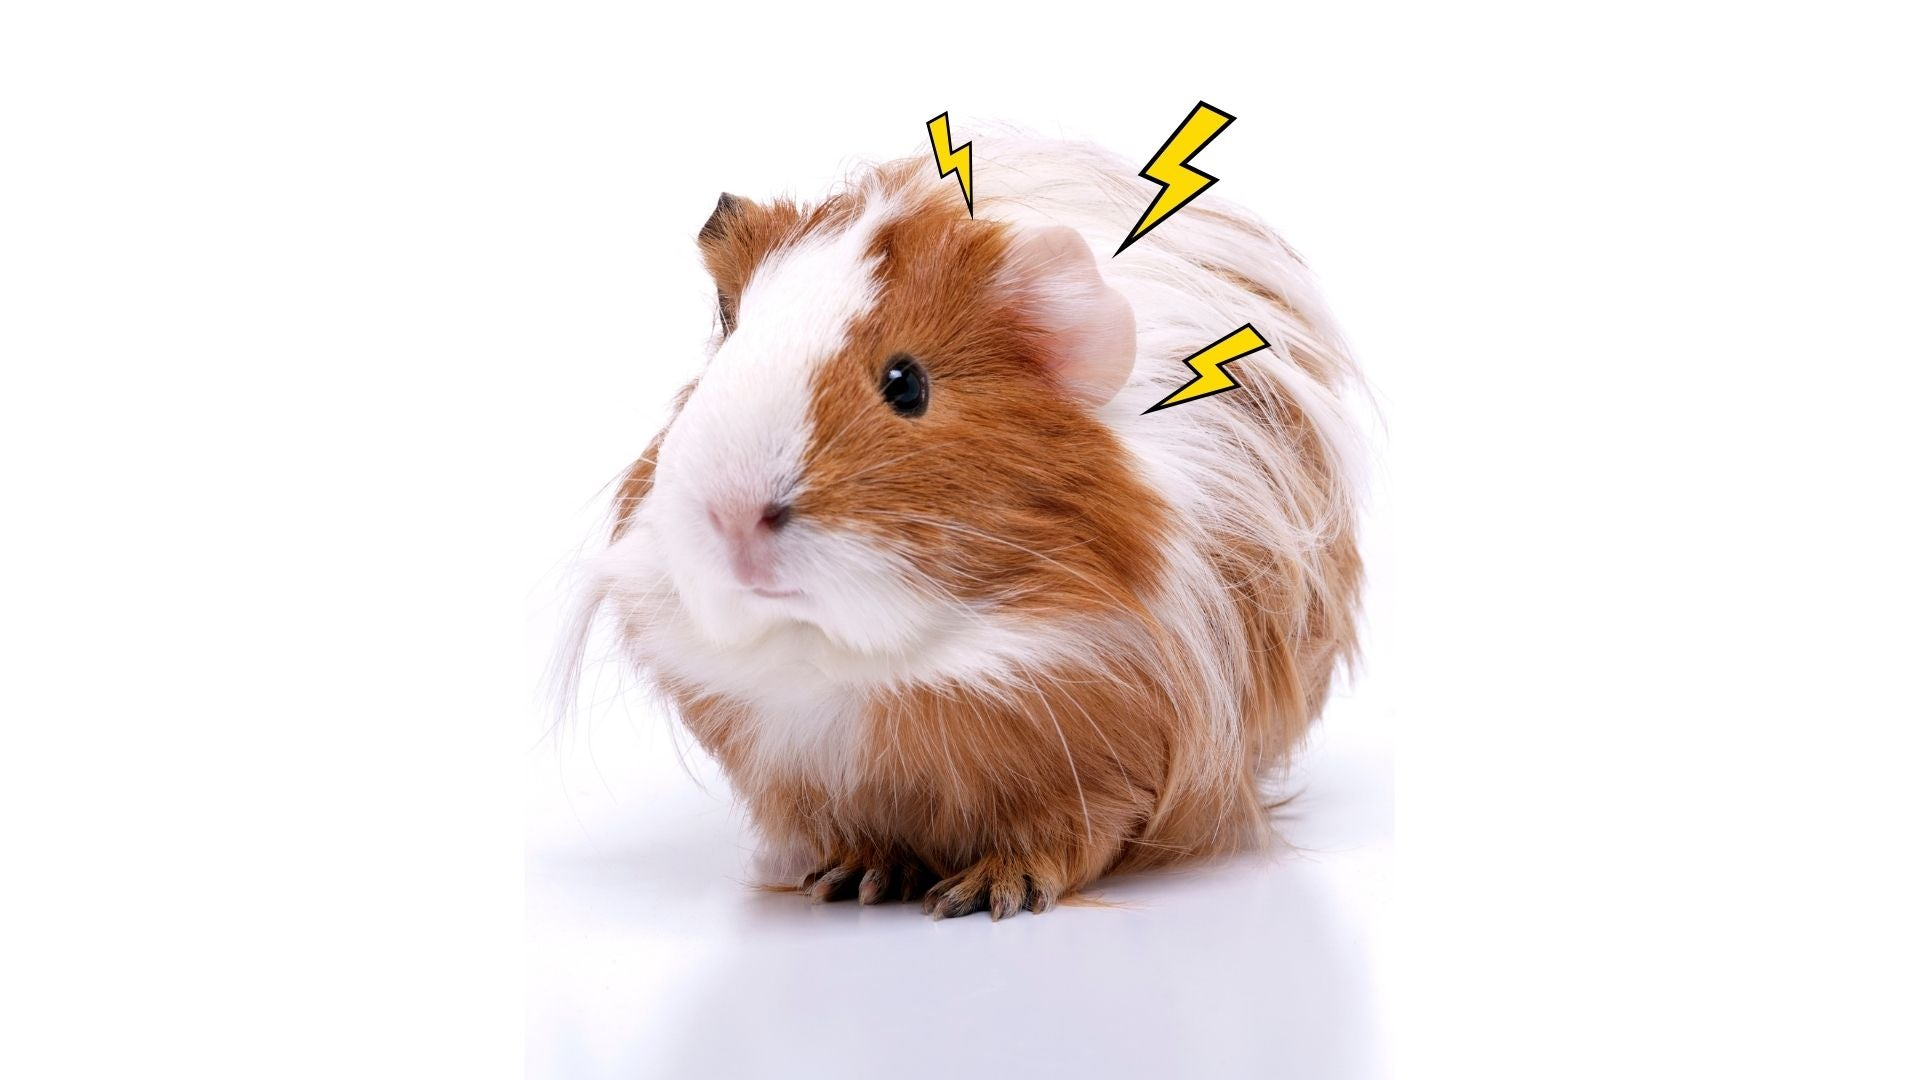 white and ginger long haired guinea pig on white background stress stressed